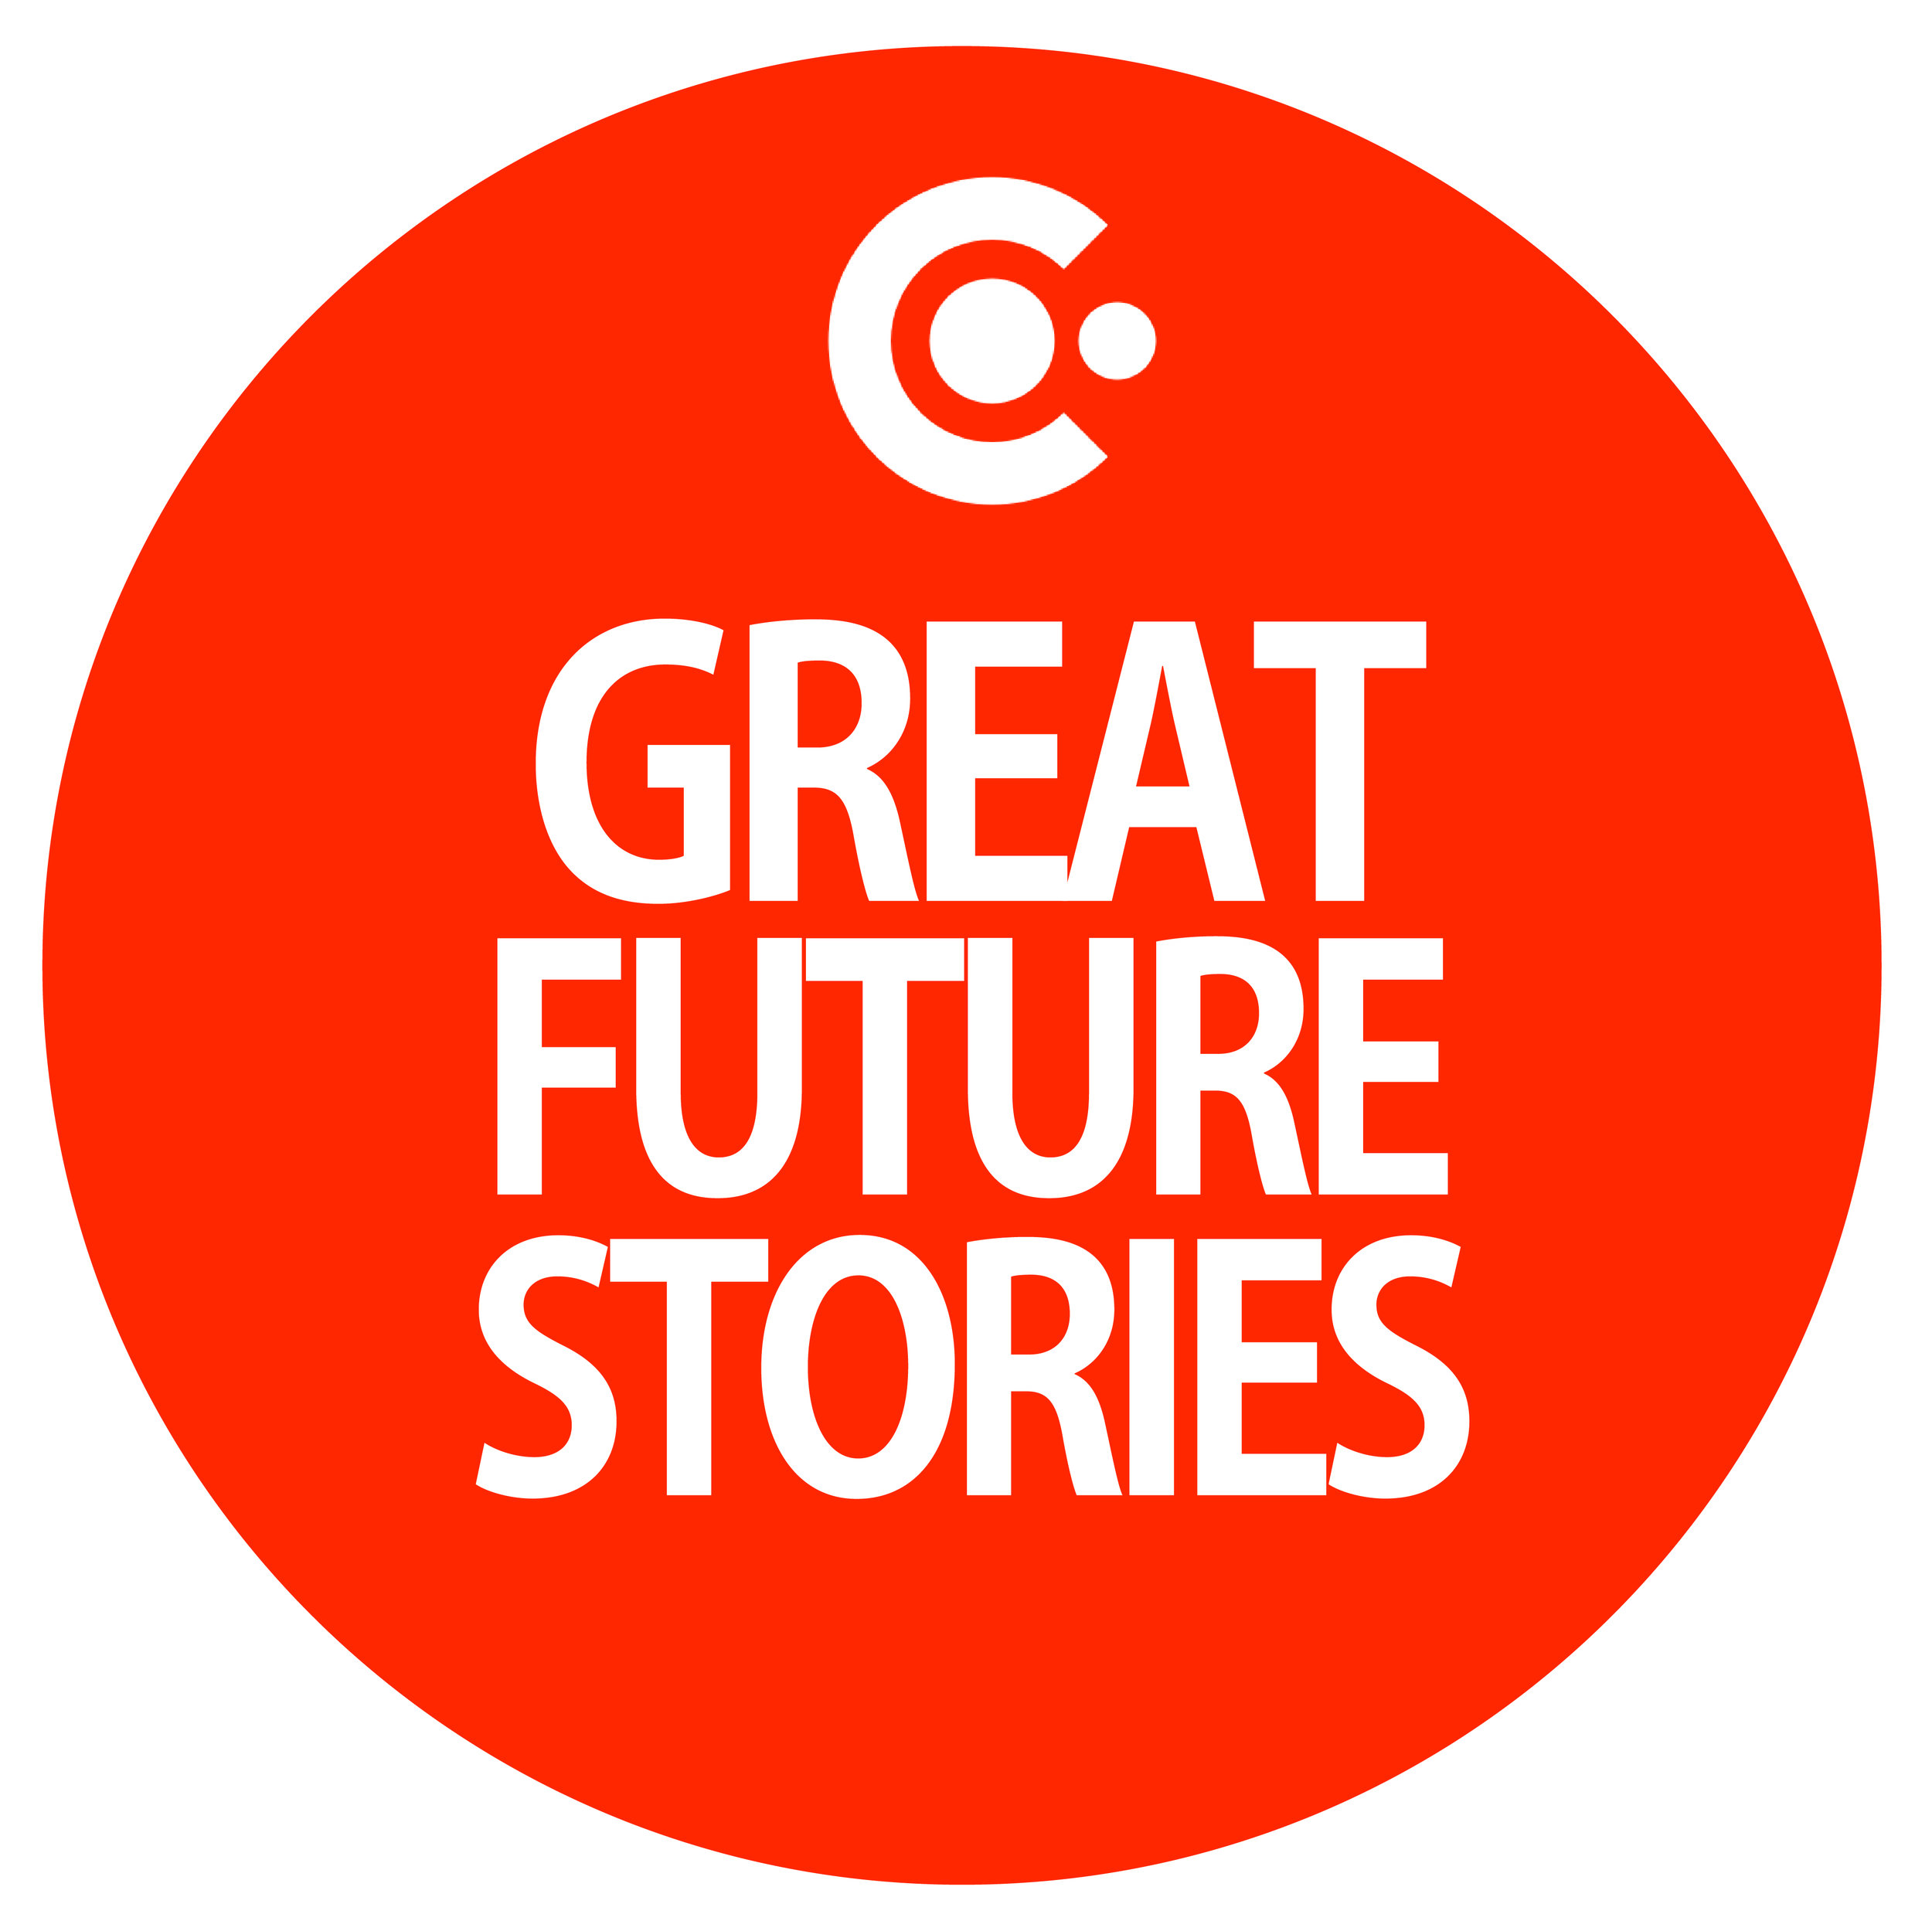 great future stories: life + brand stories shaping a great future.